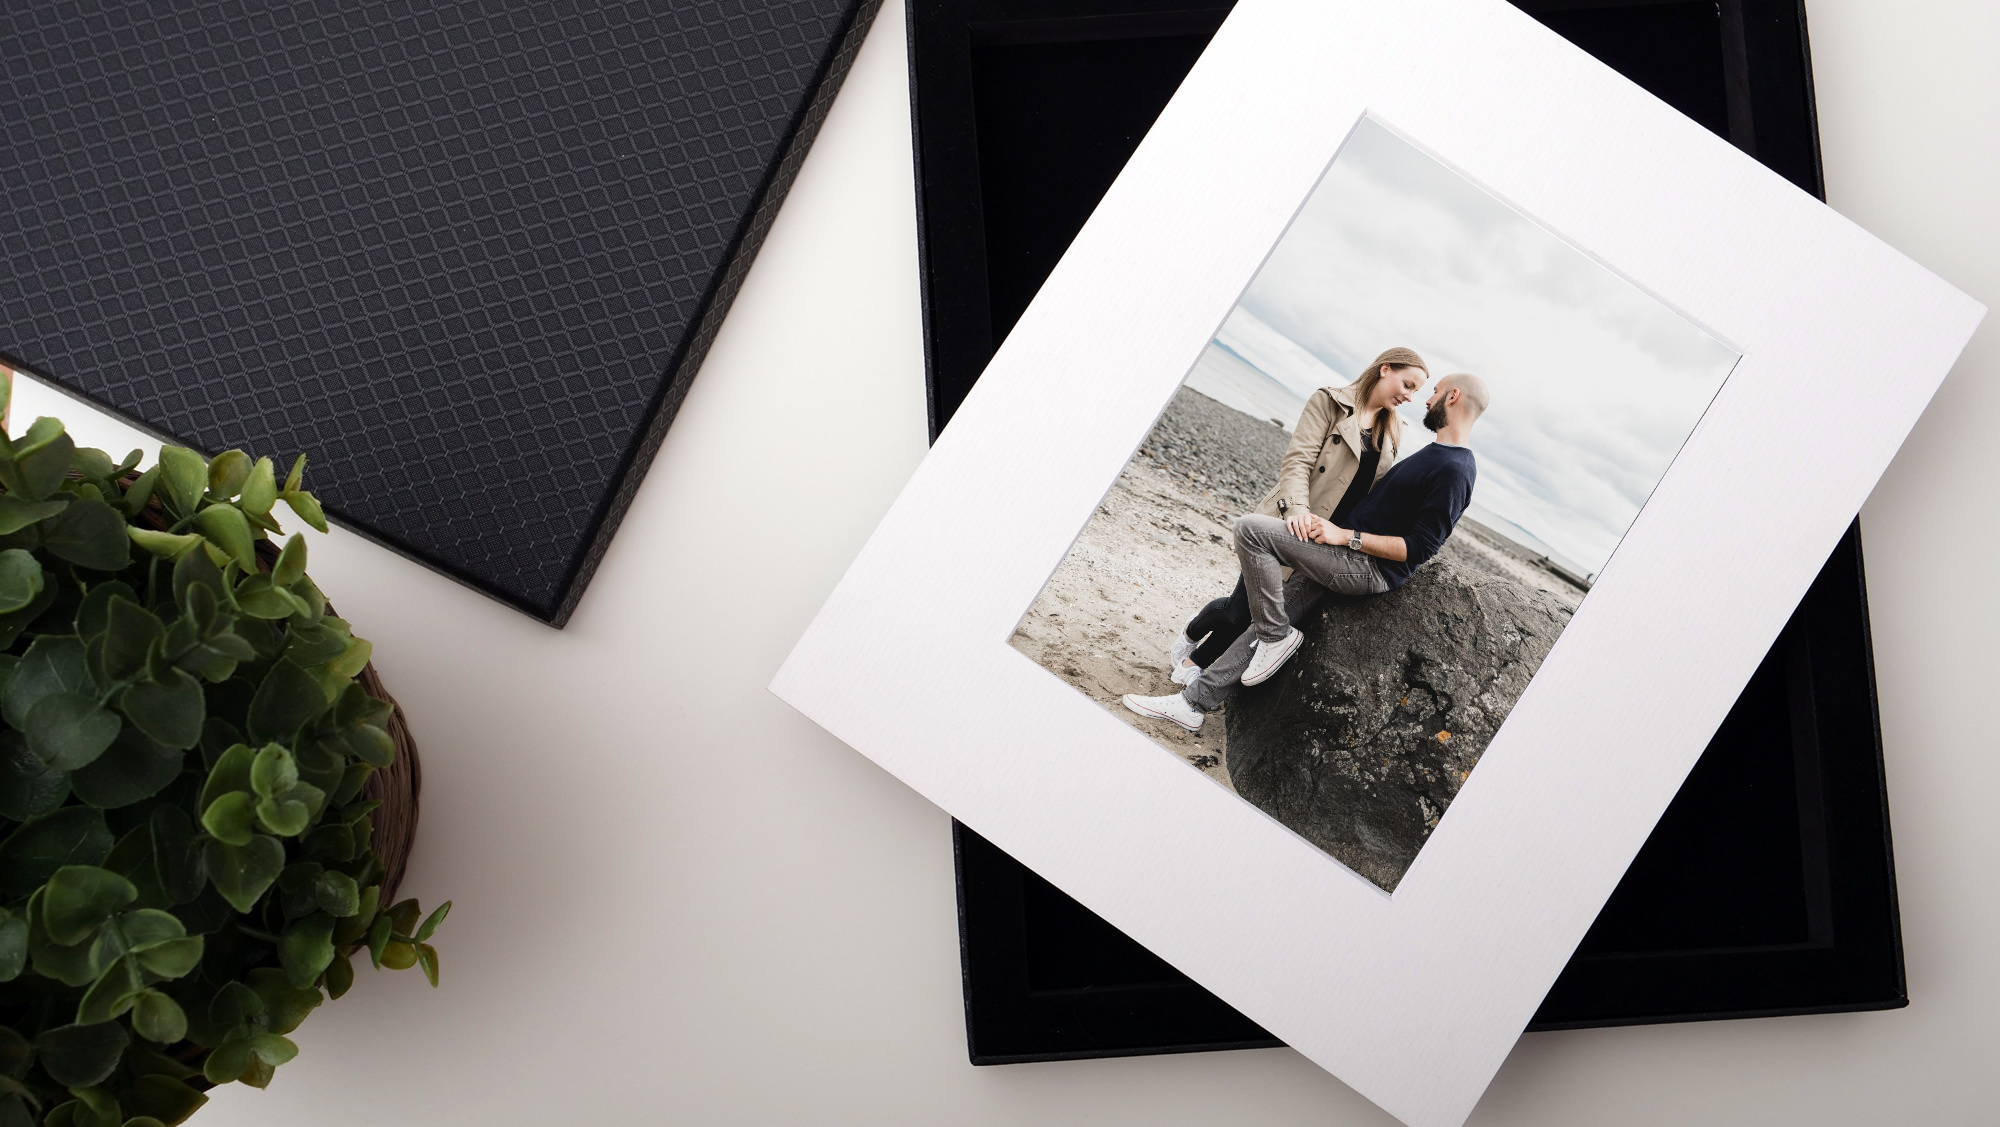 matted and mounted prints to preserve your memories